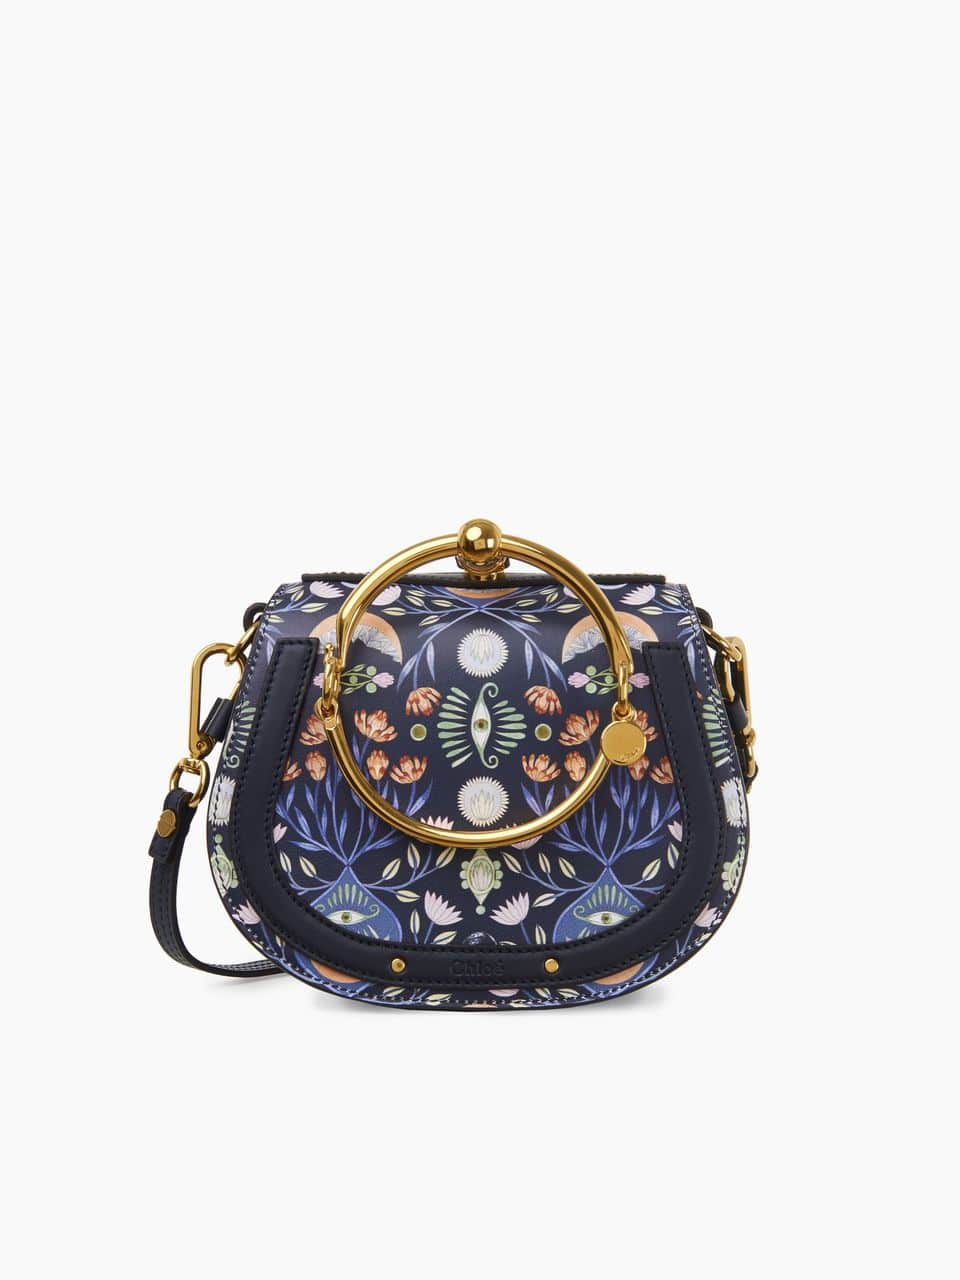 Chloe Pre Fall 2018 Bag Collection With The New Roy Bucket